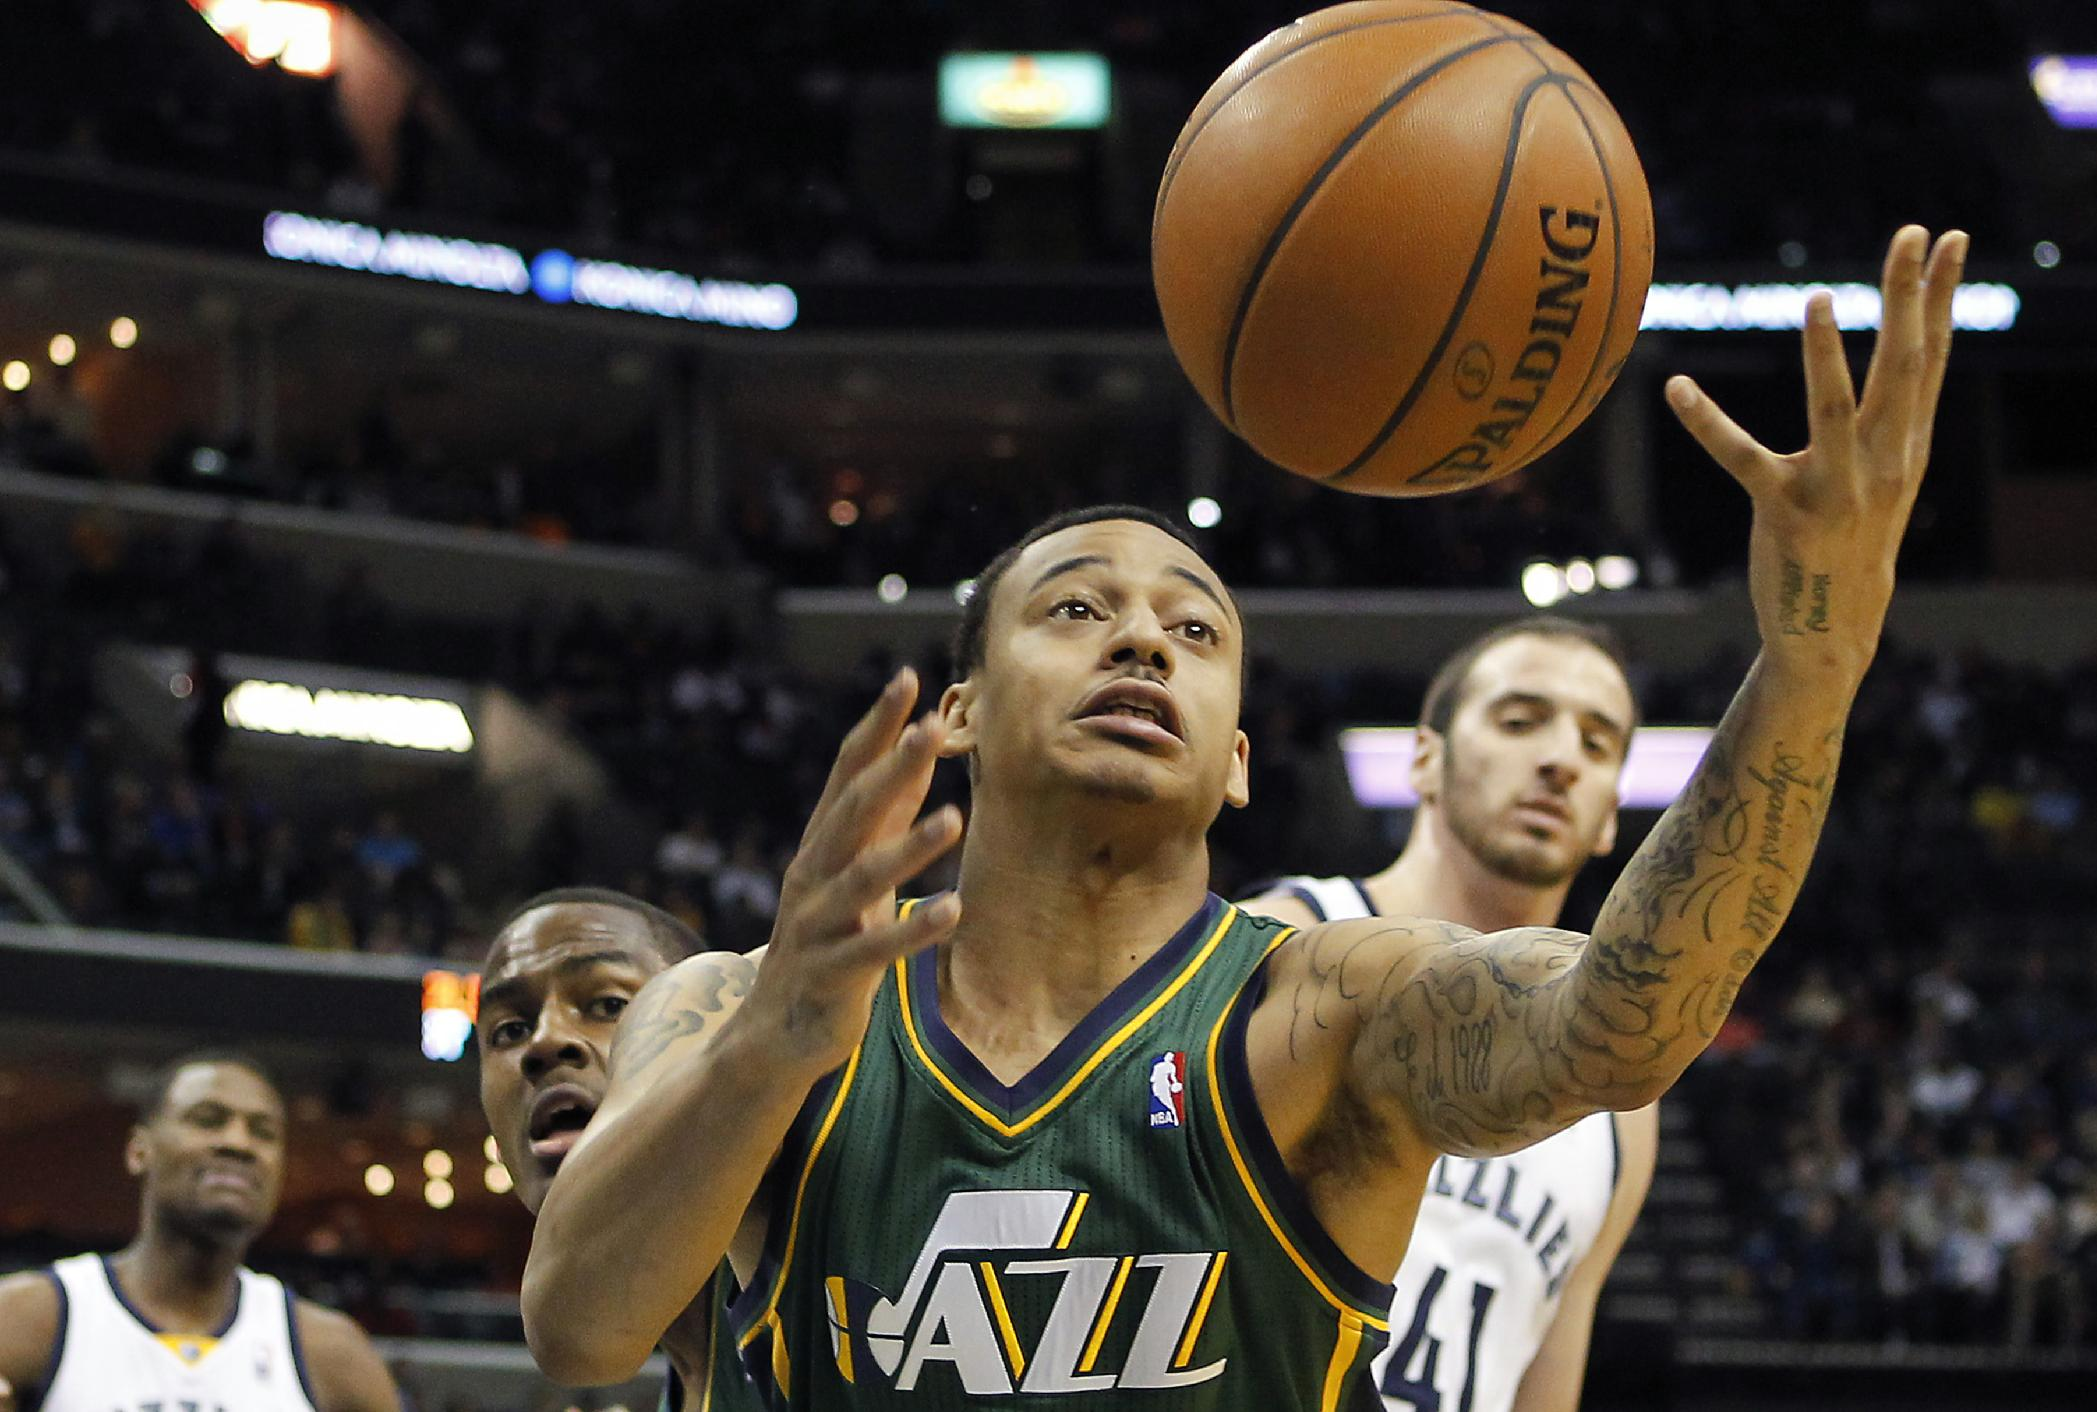 Utah Jazz guard Diante Garrett (8) tries to grab a rebound against the Memphis Grizzlies in the first half of an NBA basketball game on Wednesday, March 19, 2014, in Memphis, Tenn